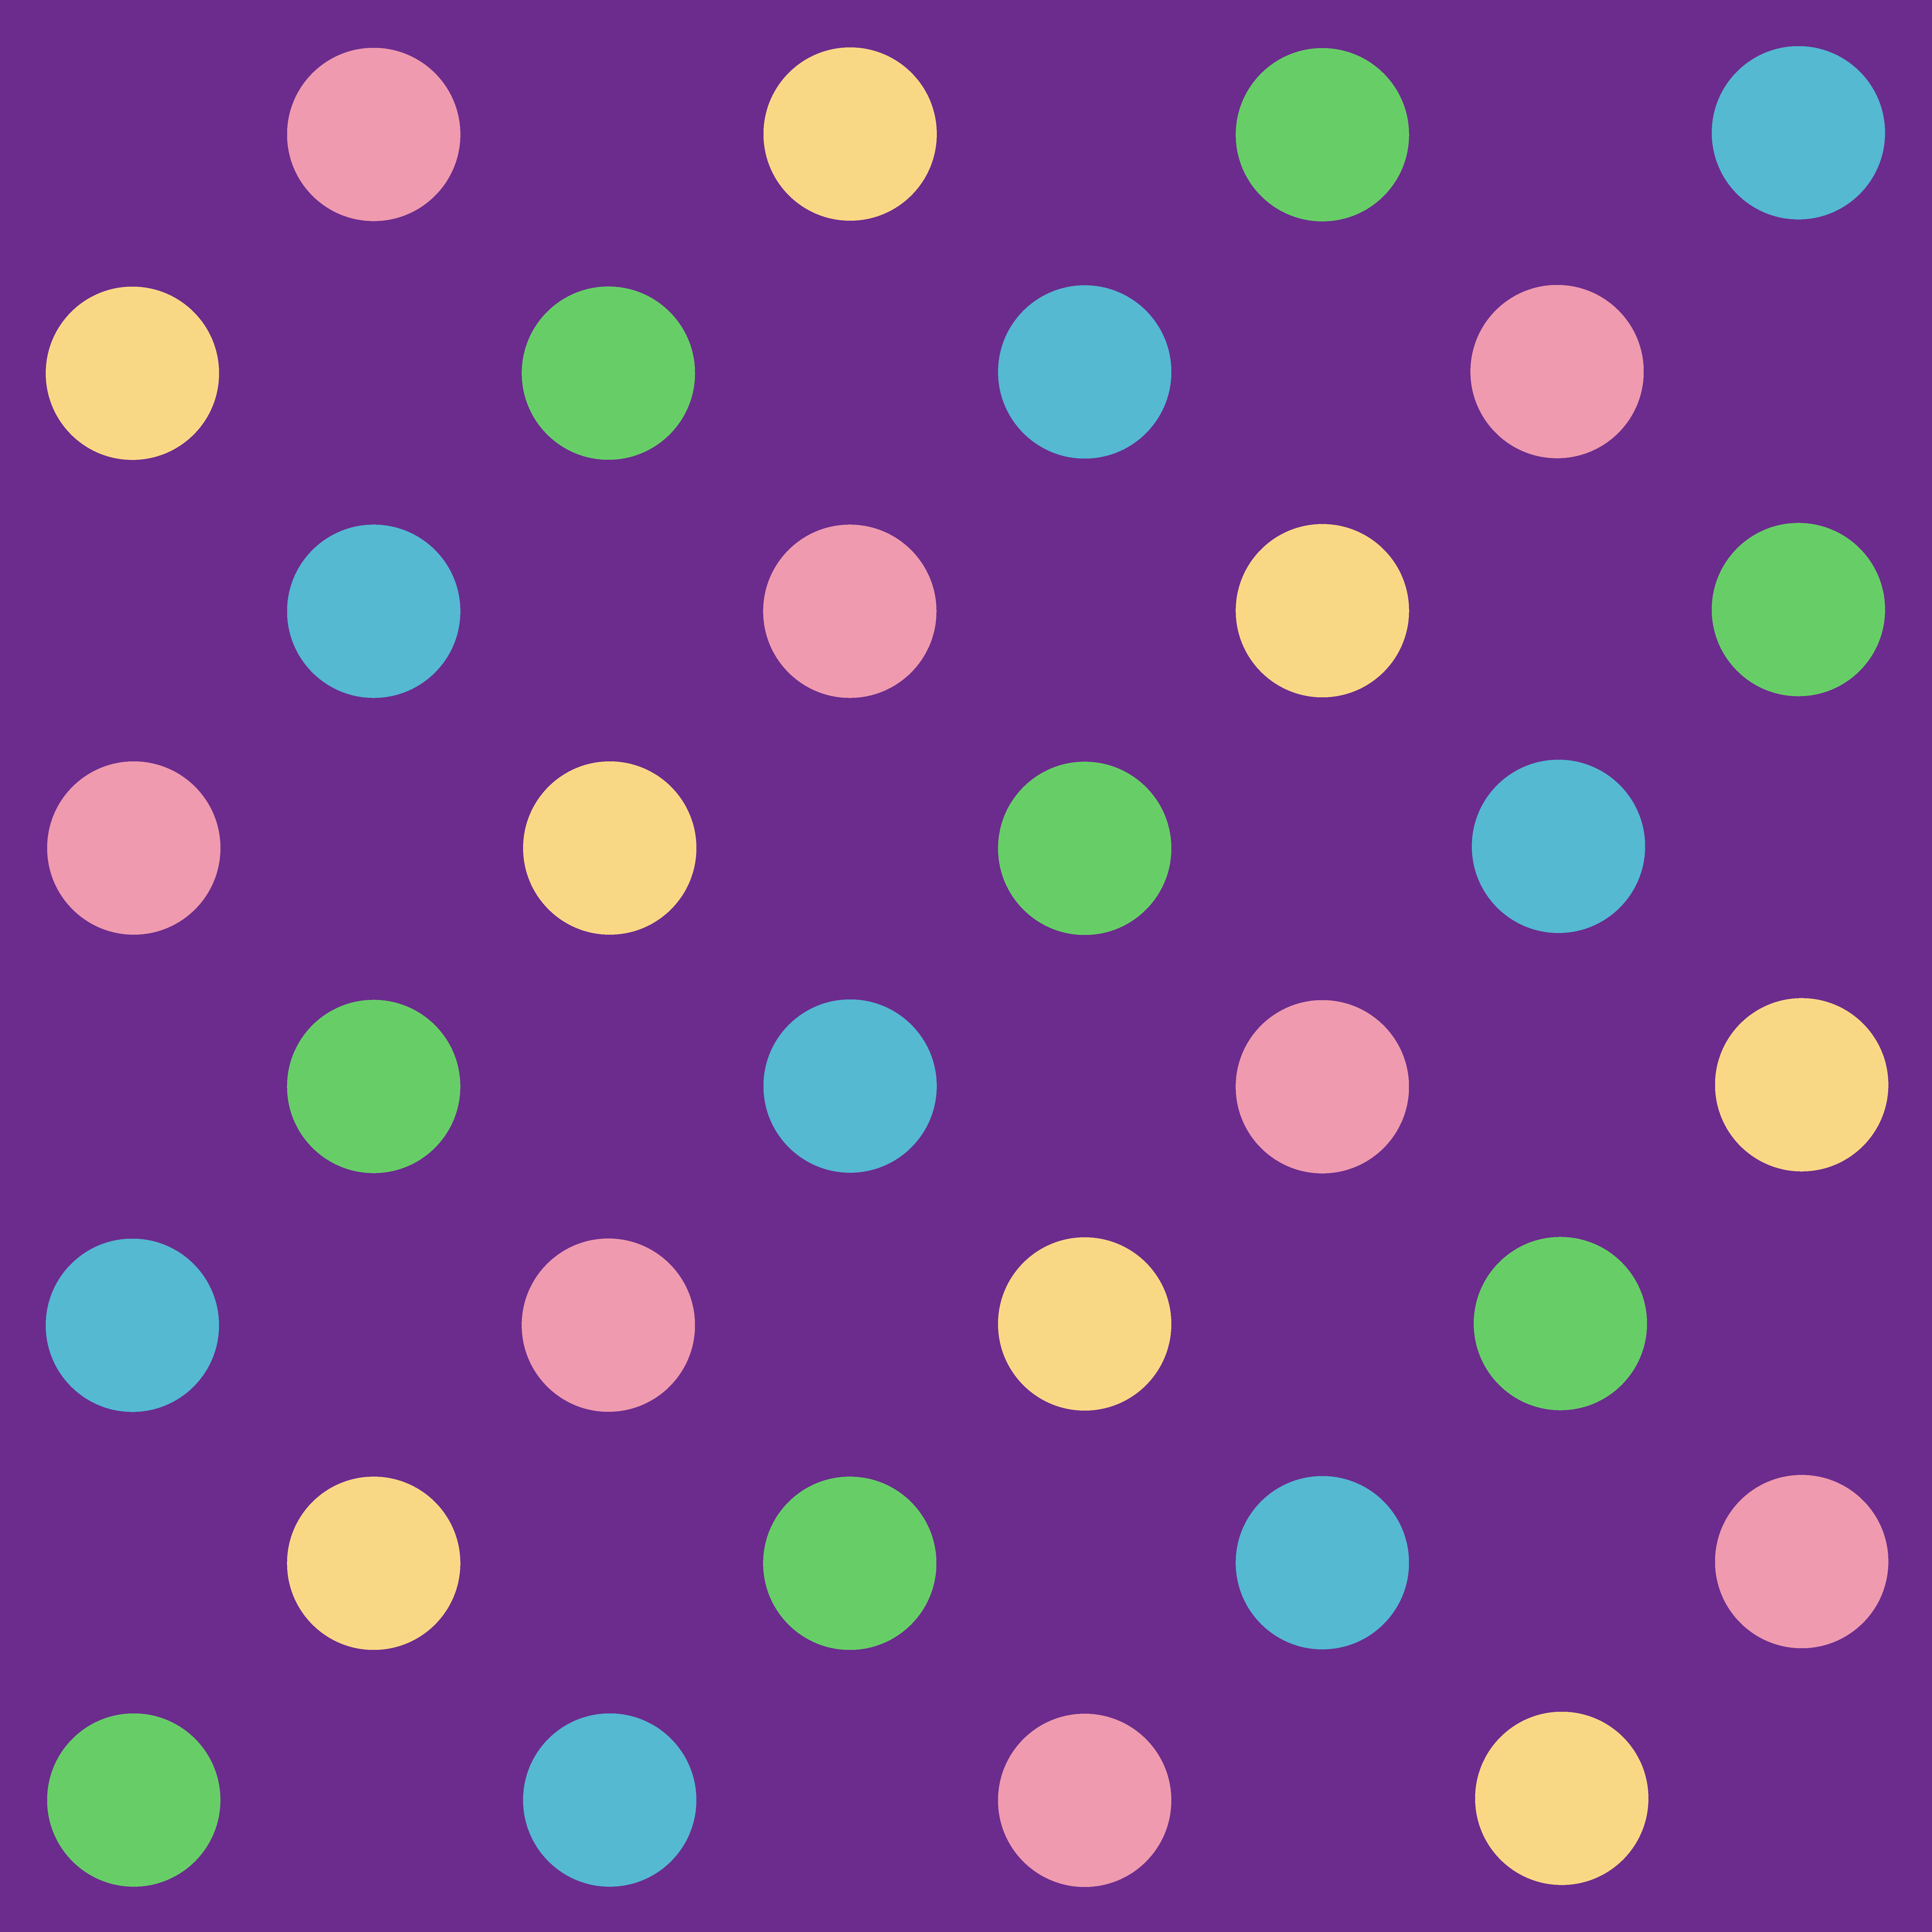 Cute Colorful Polka Dots Pattern.